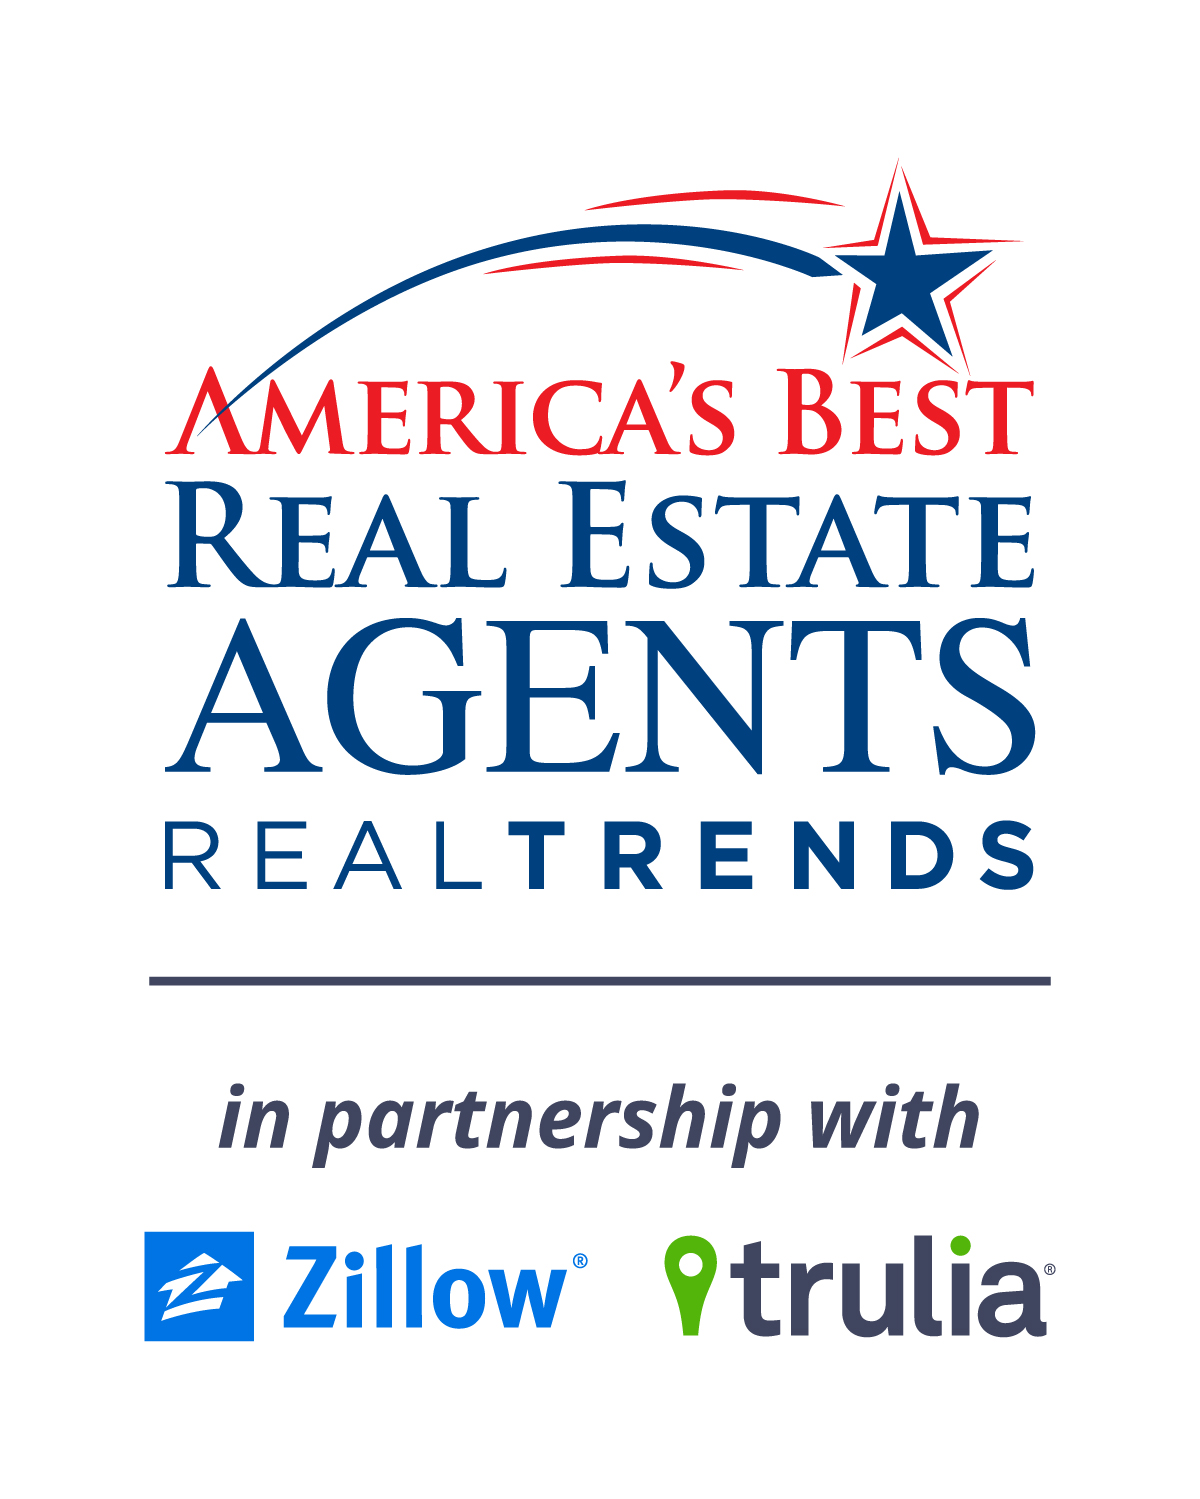 Christine_Cardoso_America's_Best_Real_Estate_Agents_RealTrends_in_partnership_with_Zillow_Trulia